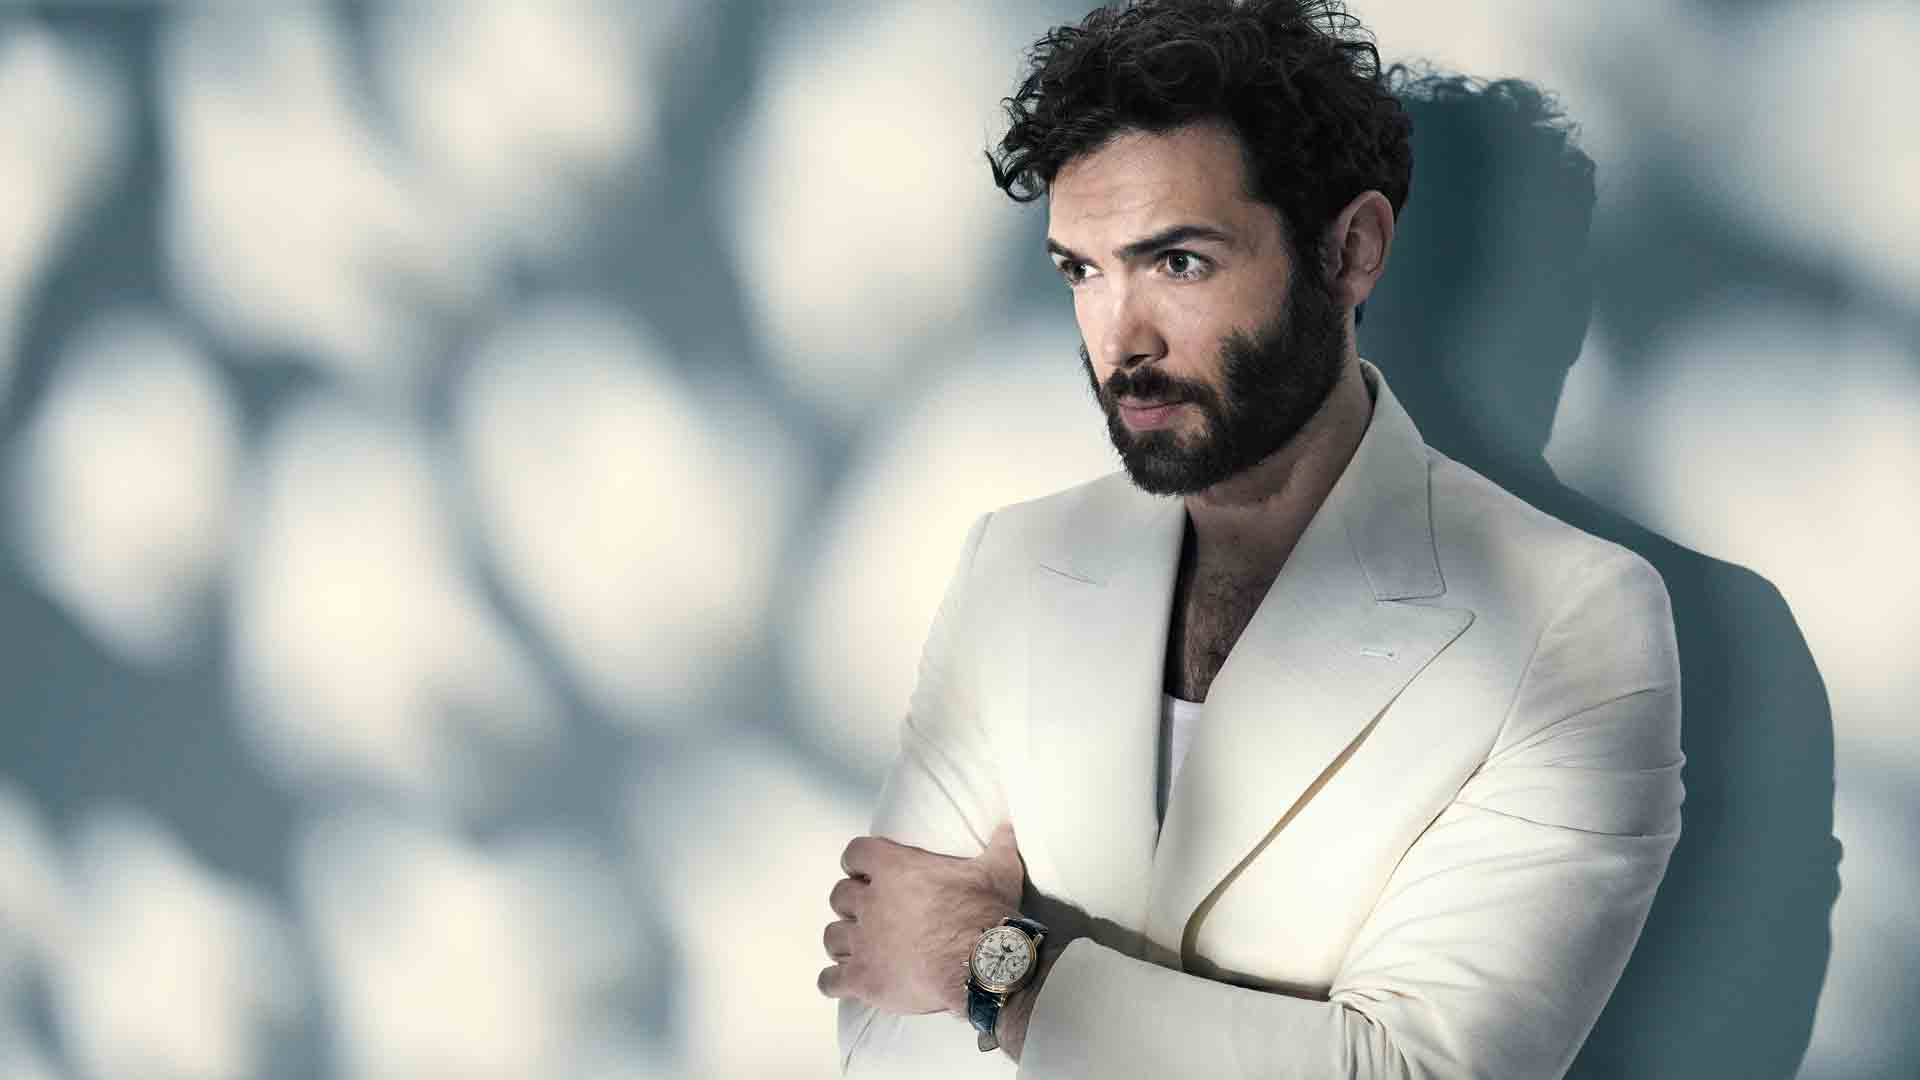 Ethan Peck strives for perfection